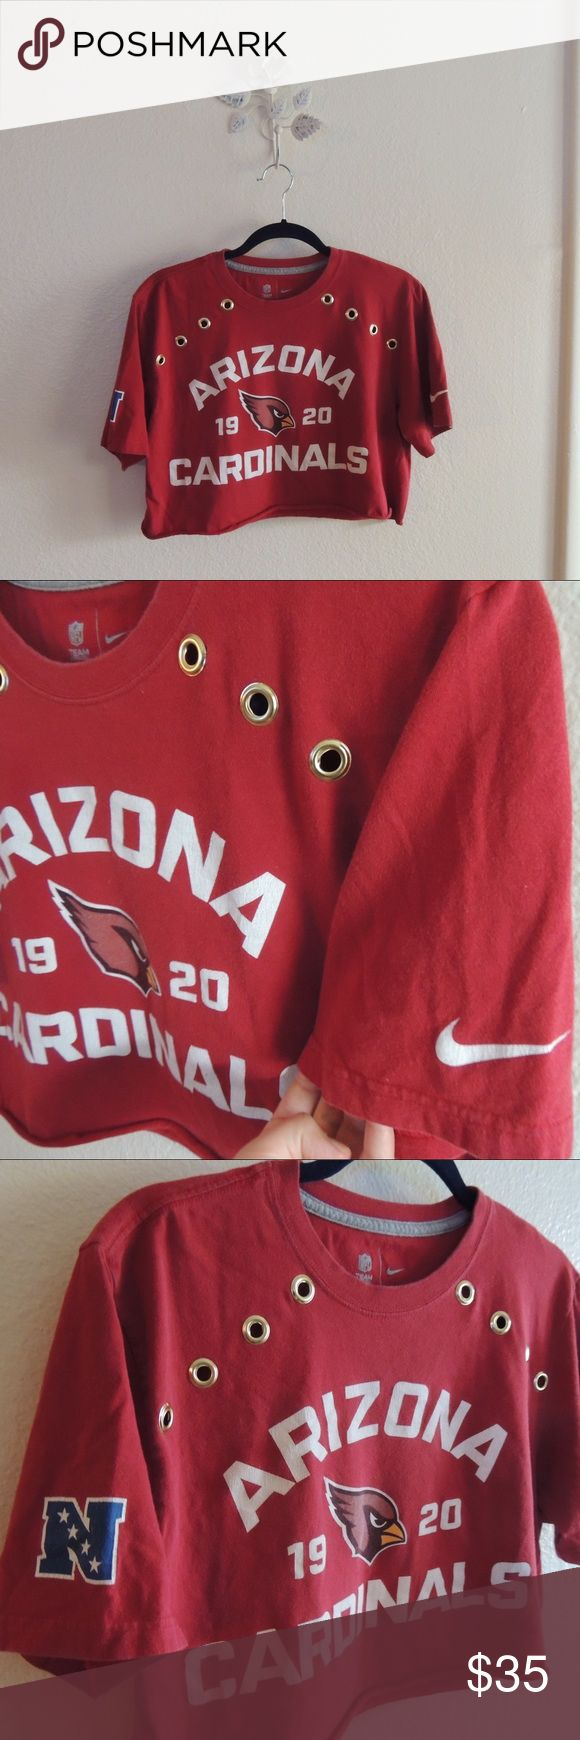 NIKE Arizona cardinals crop top with gold detail ARIZONA CARDINALS crop top with gold grommet detail. Perfect with jeans for game day or with leggings and a jean jacket running errands Nike Tops Crop Tops